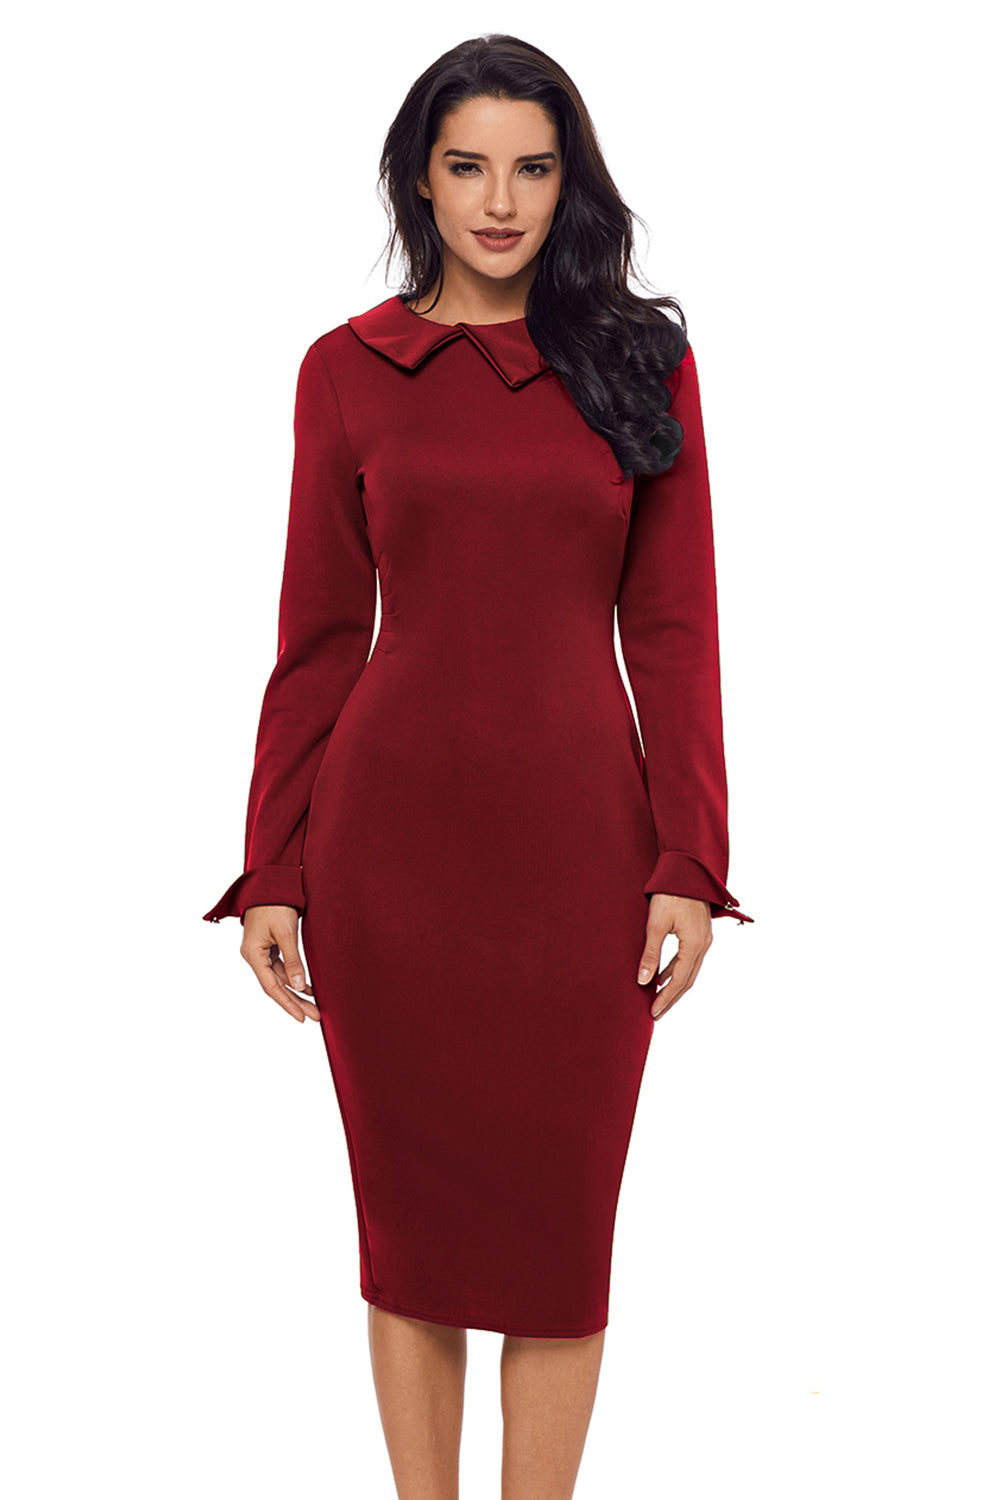 Her Fashion Burgundy Lapel Neck Bodycon Formal Women Pencil Dress